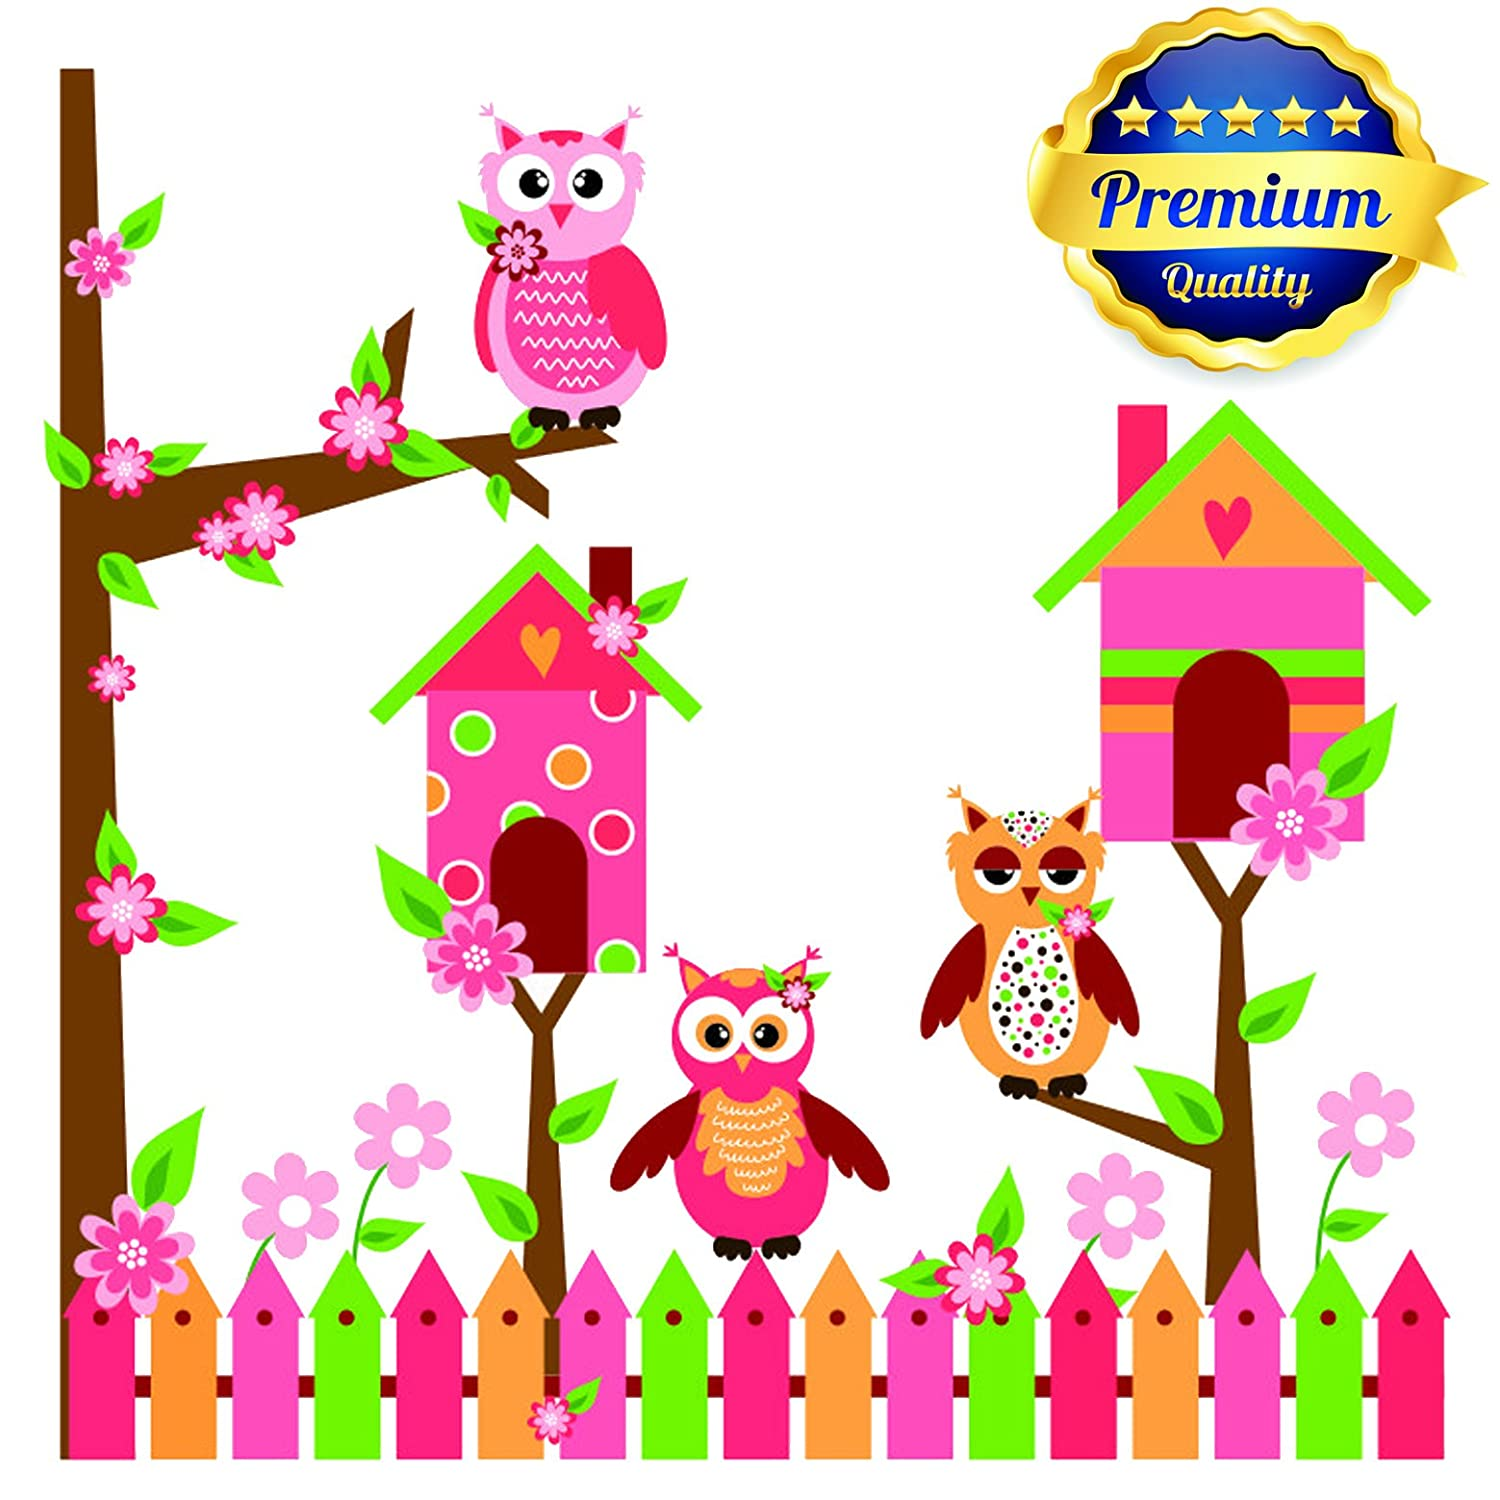 1 Notebook 565108 B00vyl95qe Baby Room Wall Decals Owls